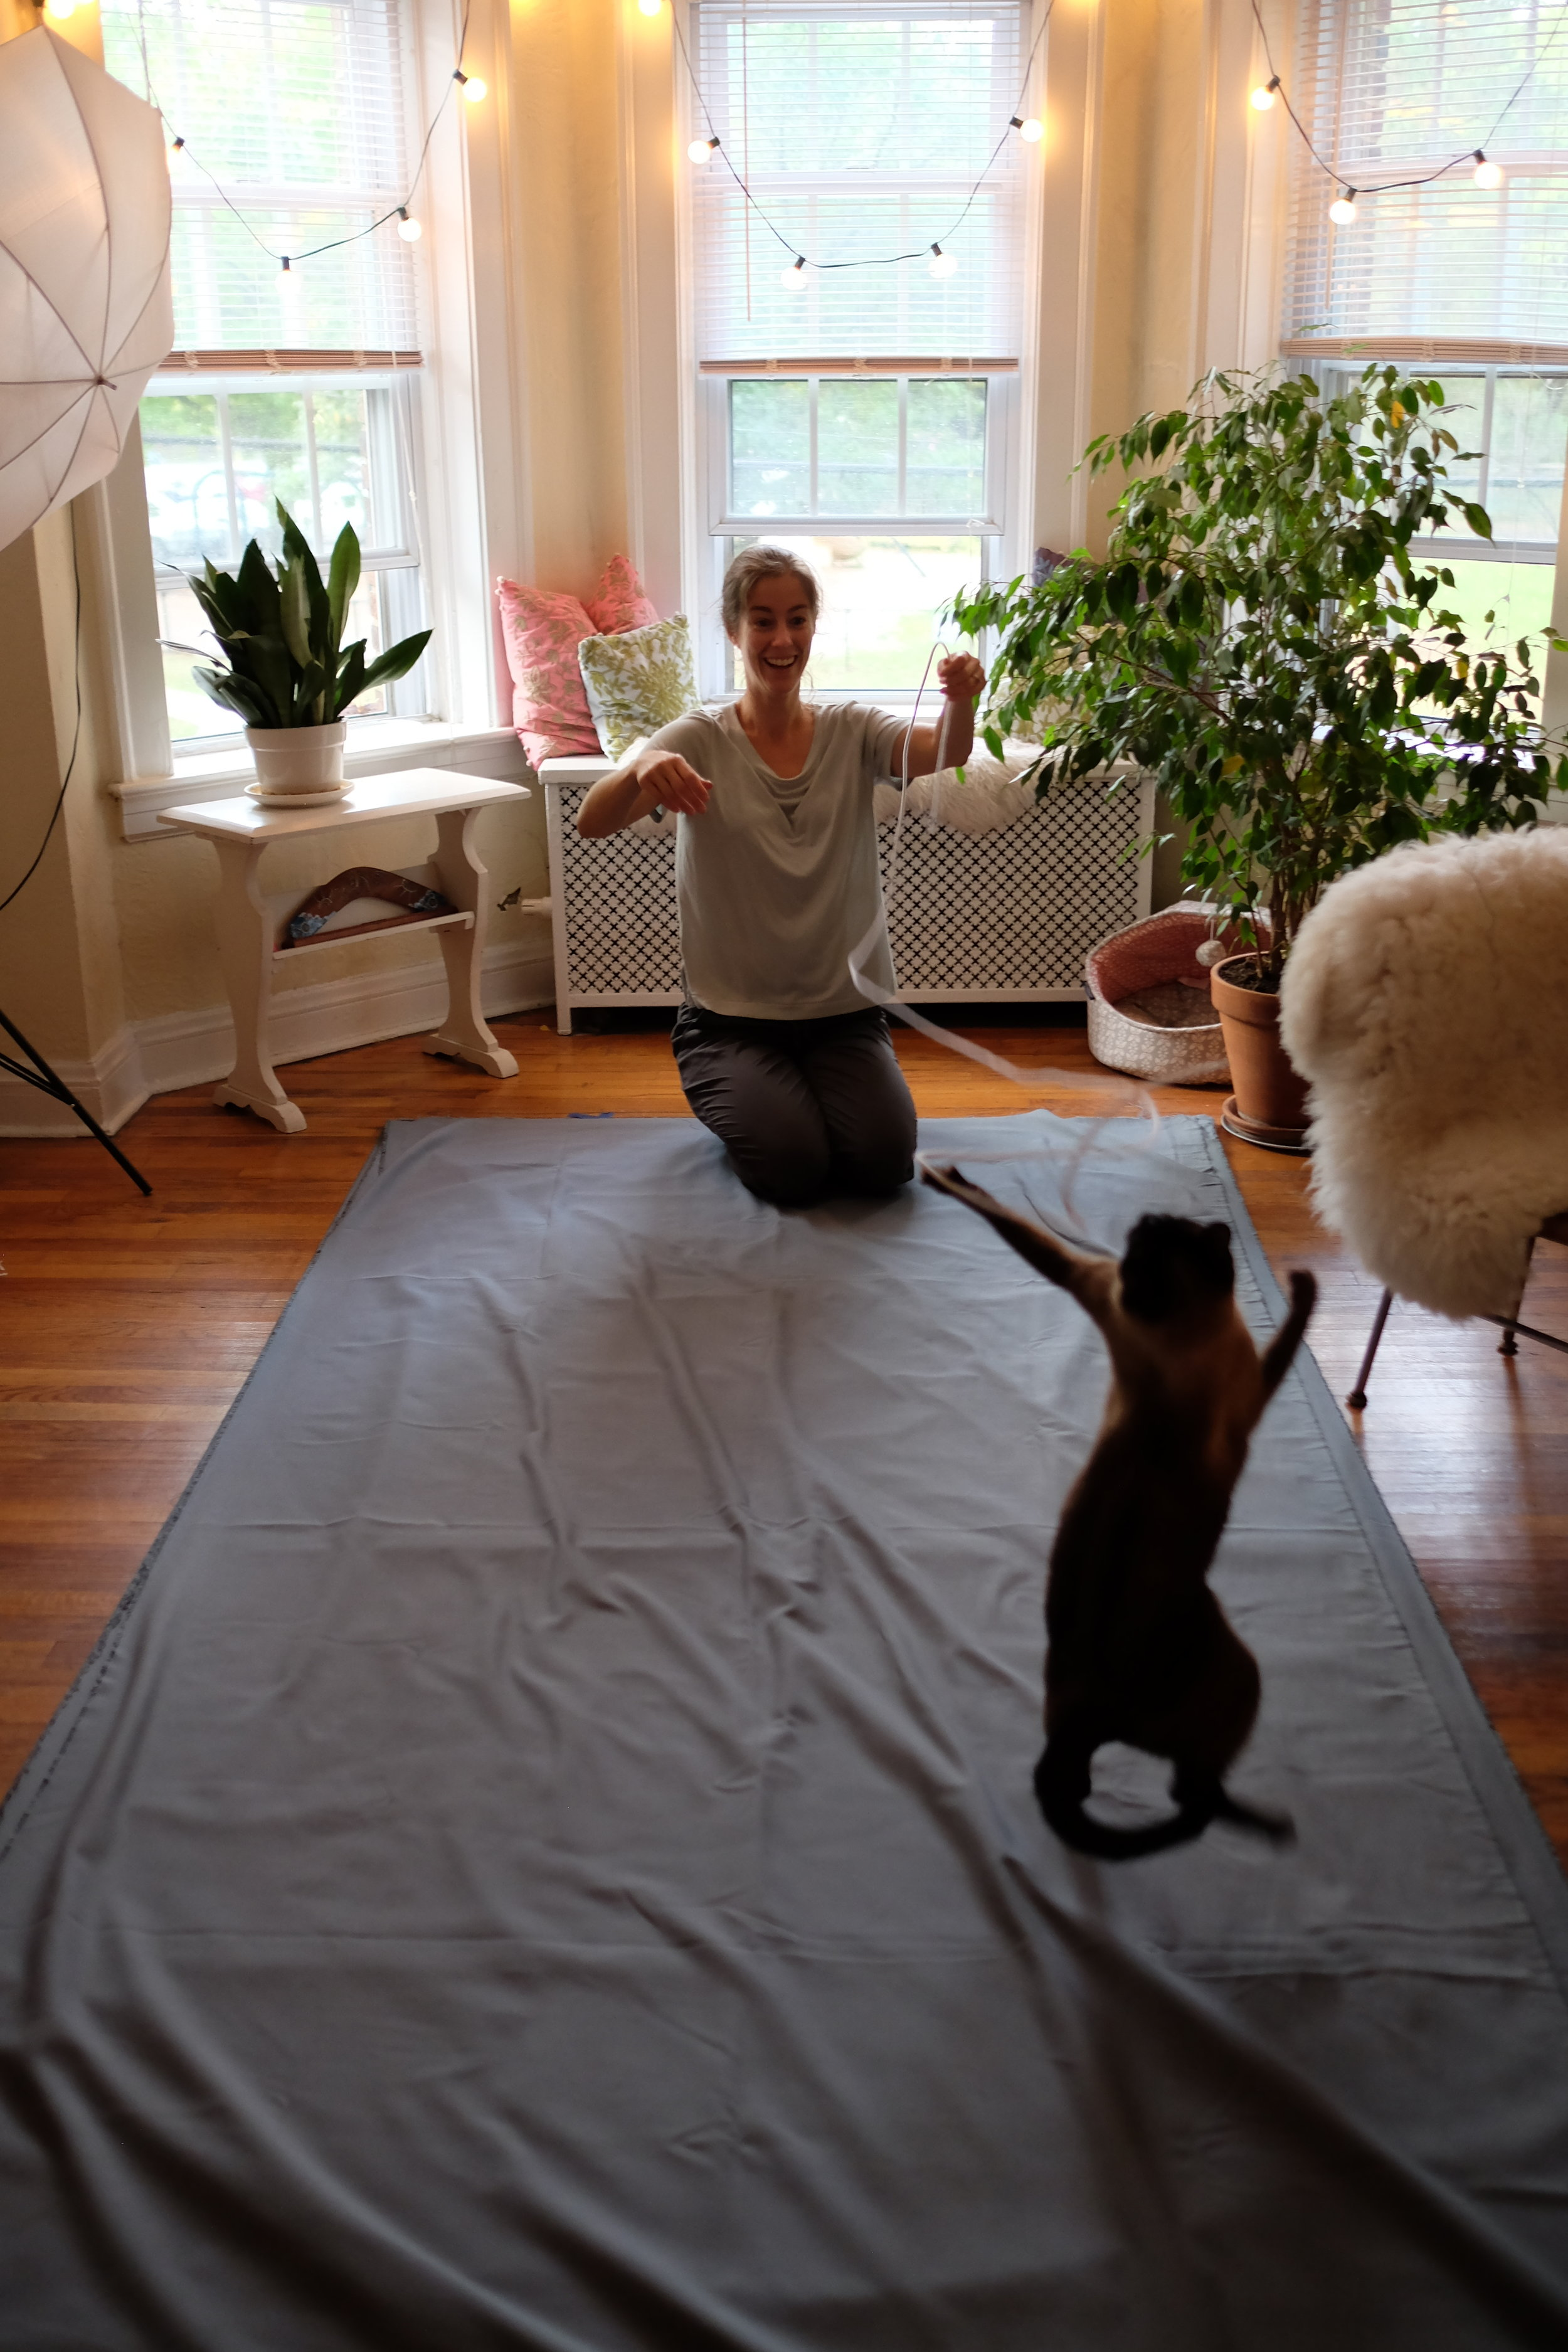 Kristina making curtains, and playing with Jasper.